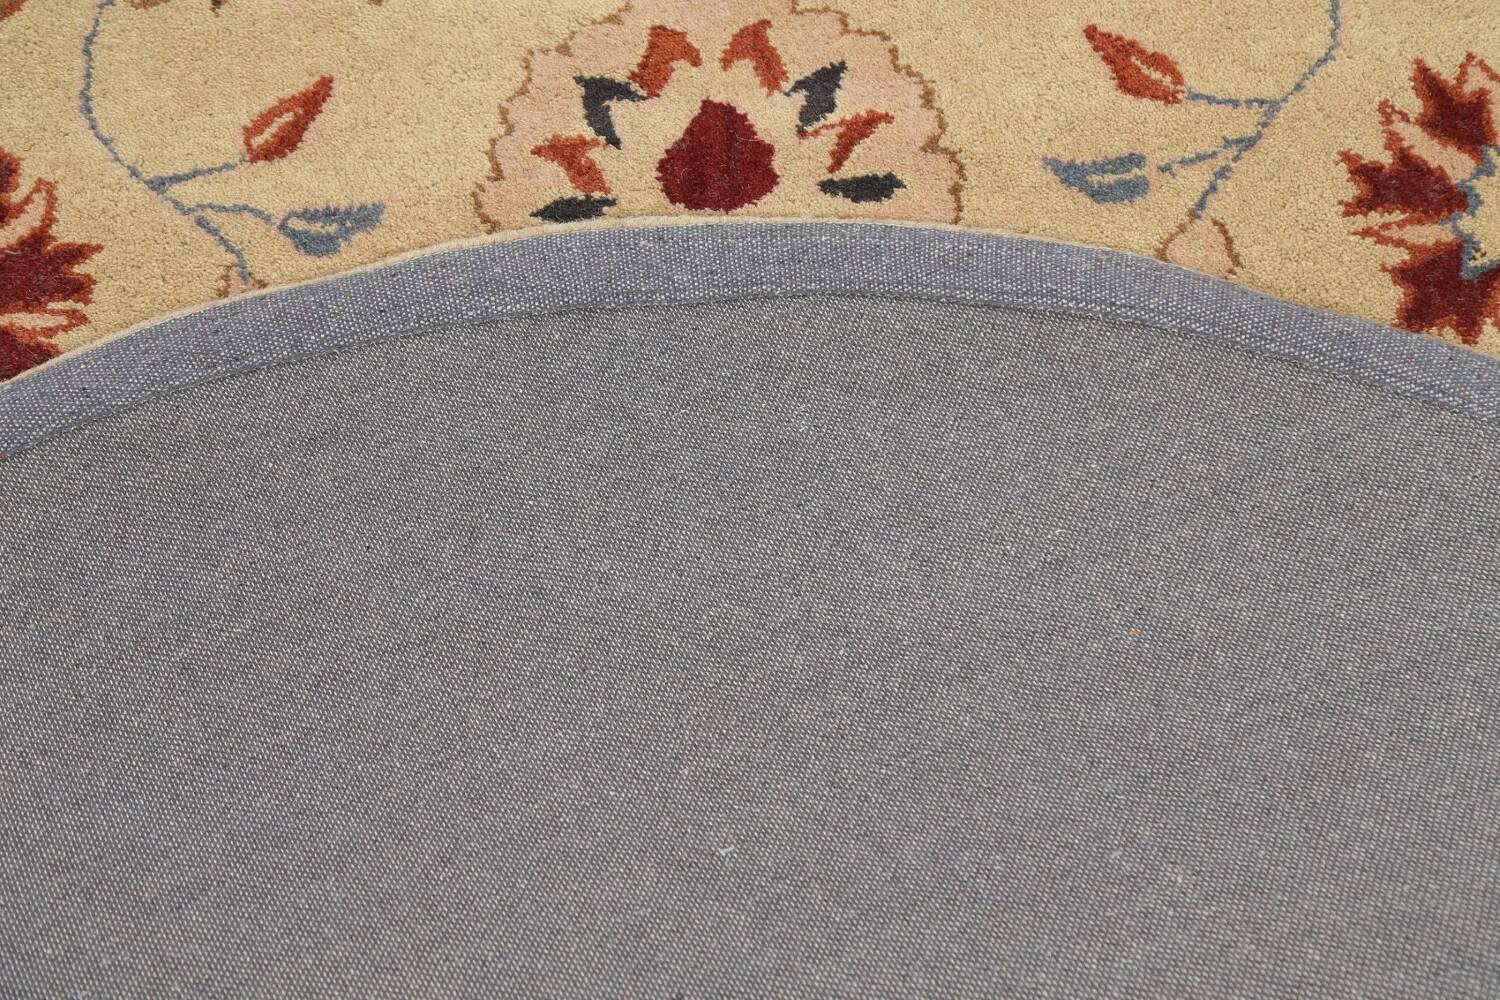 Floral Round Rug 6x6 image 8